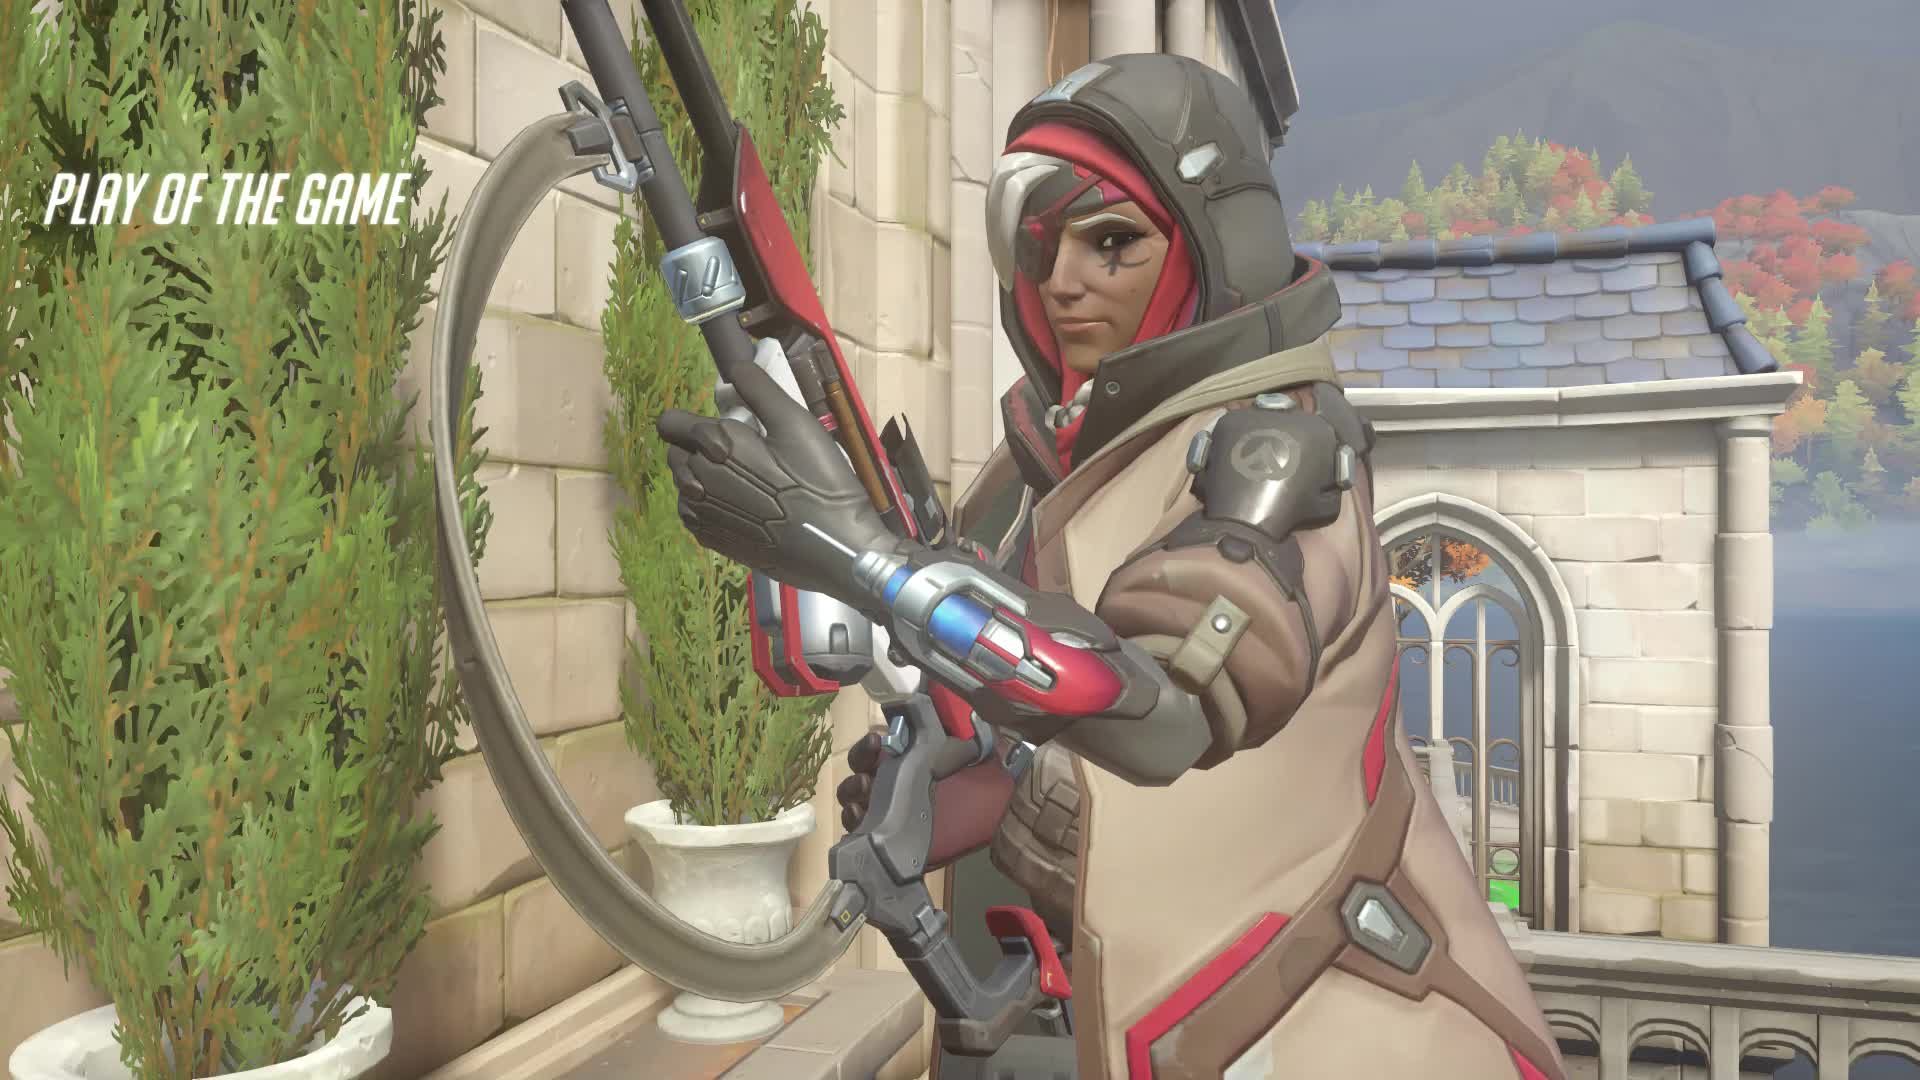 ana, ana paintball, apb, flicks, gm, highlight, overwatch, ow, poggers, potg, top 500, top500, apb flicks GIFs